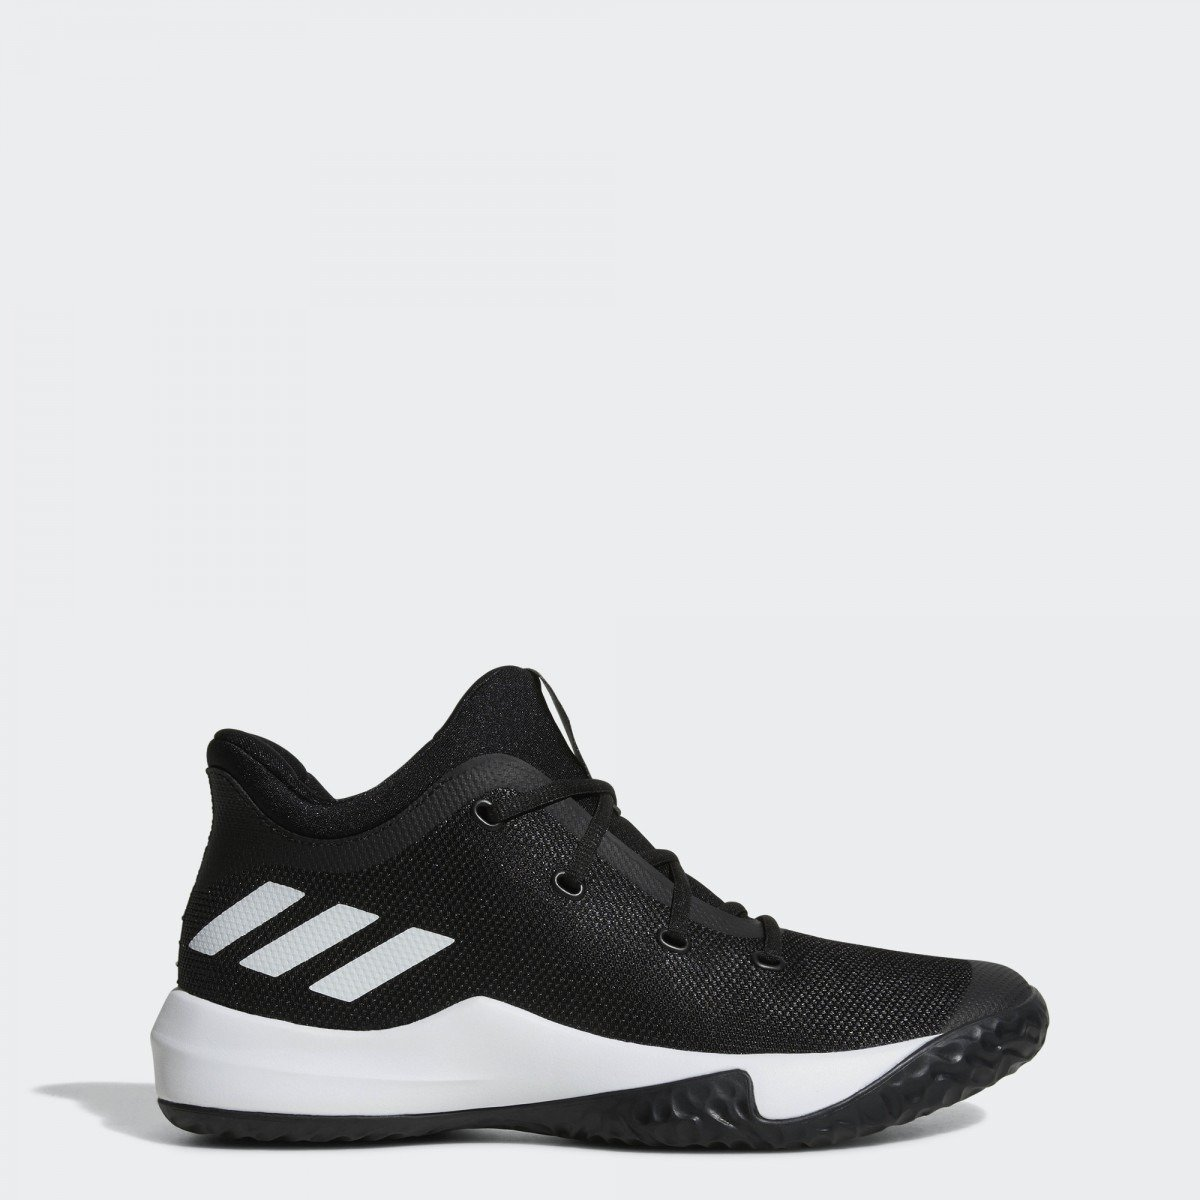 Up CQ0559 Rise Adidas Basketball 2 Schuhe n8wPNOZk0X